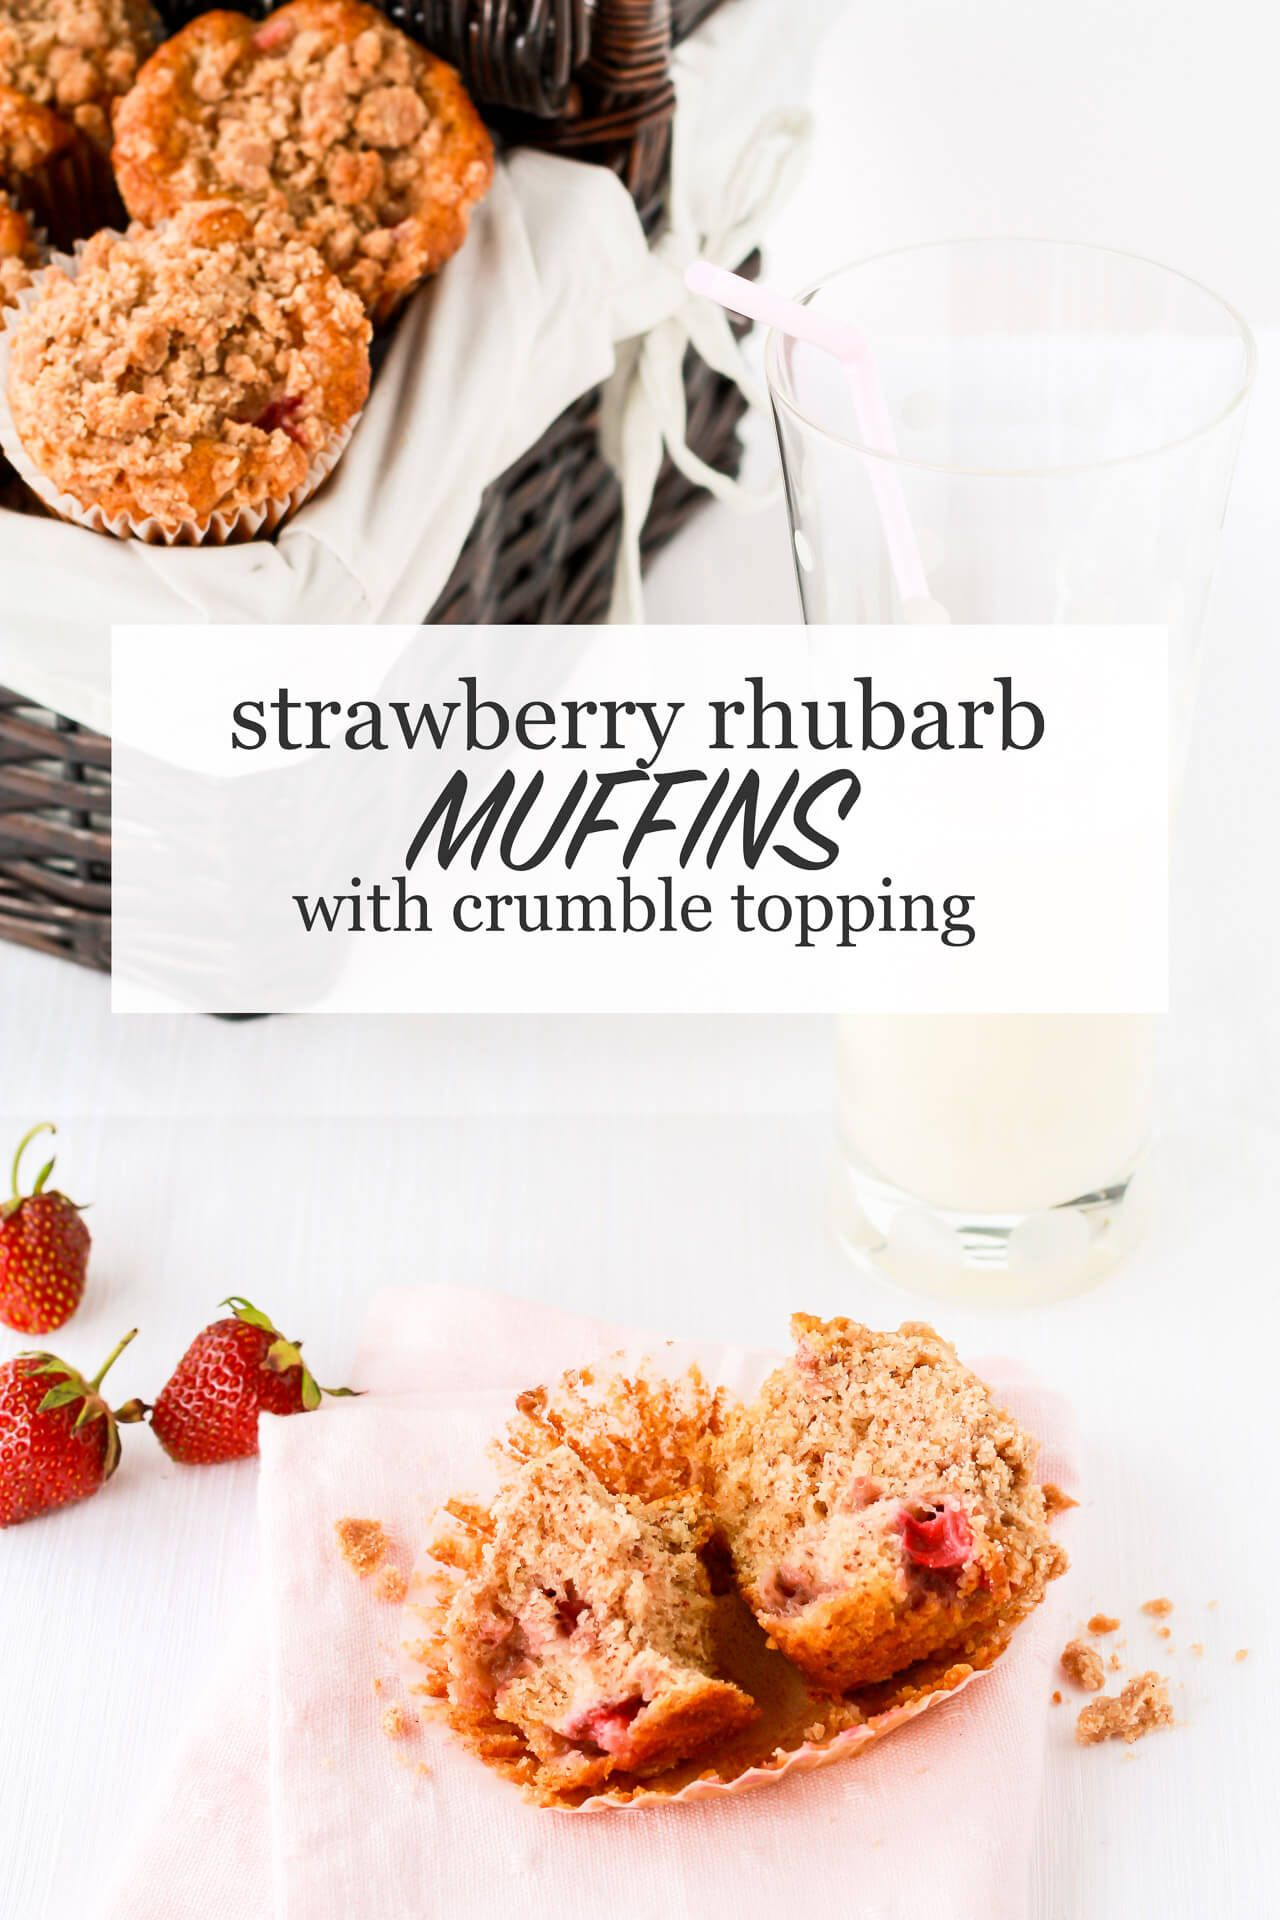 Strawberry Rhubarb Muffins With Streusel Topping Recipe With Images Rhubarb Recipes Muffins Rhubarb Muffins Recipes